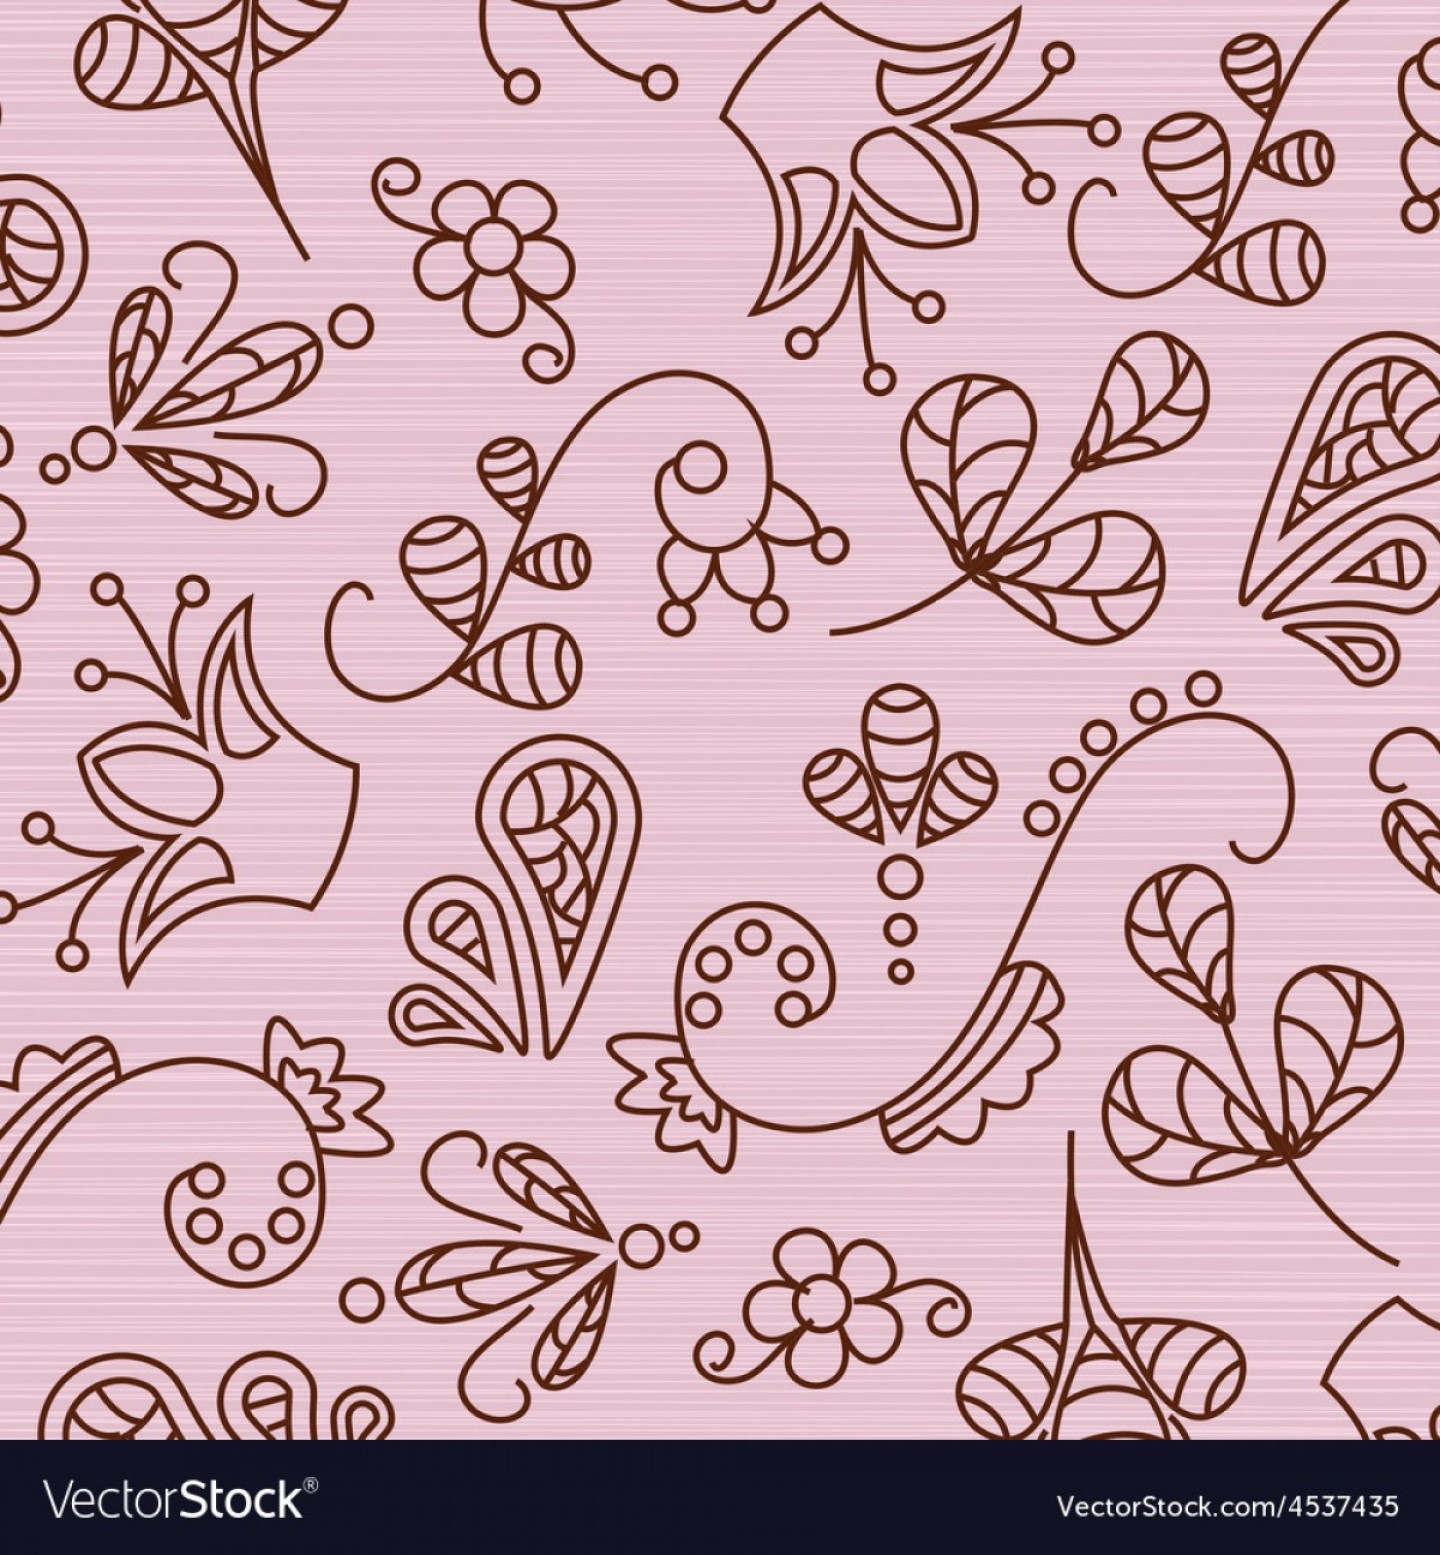 Beautiful Patterns Vector: Beautiful Patterns On A Pink Background Vector